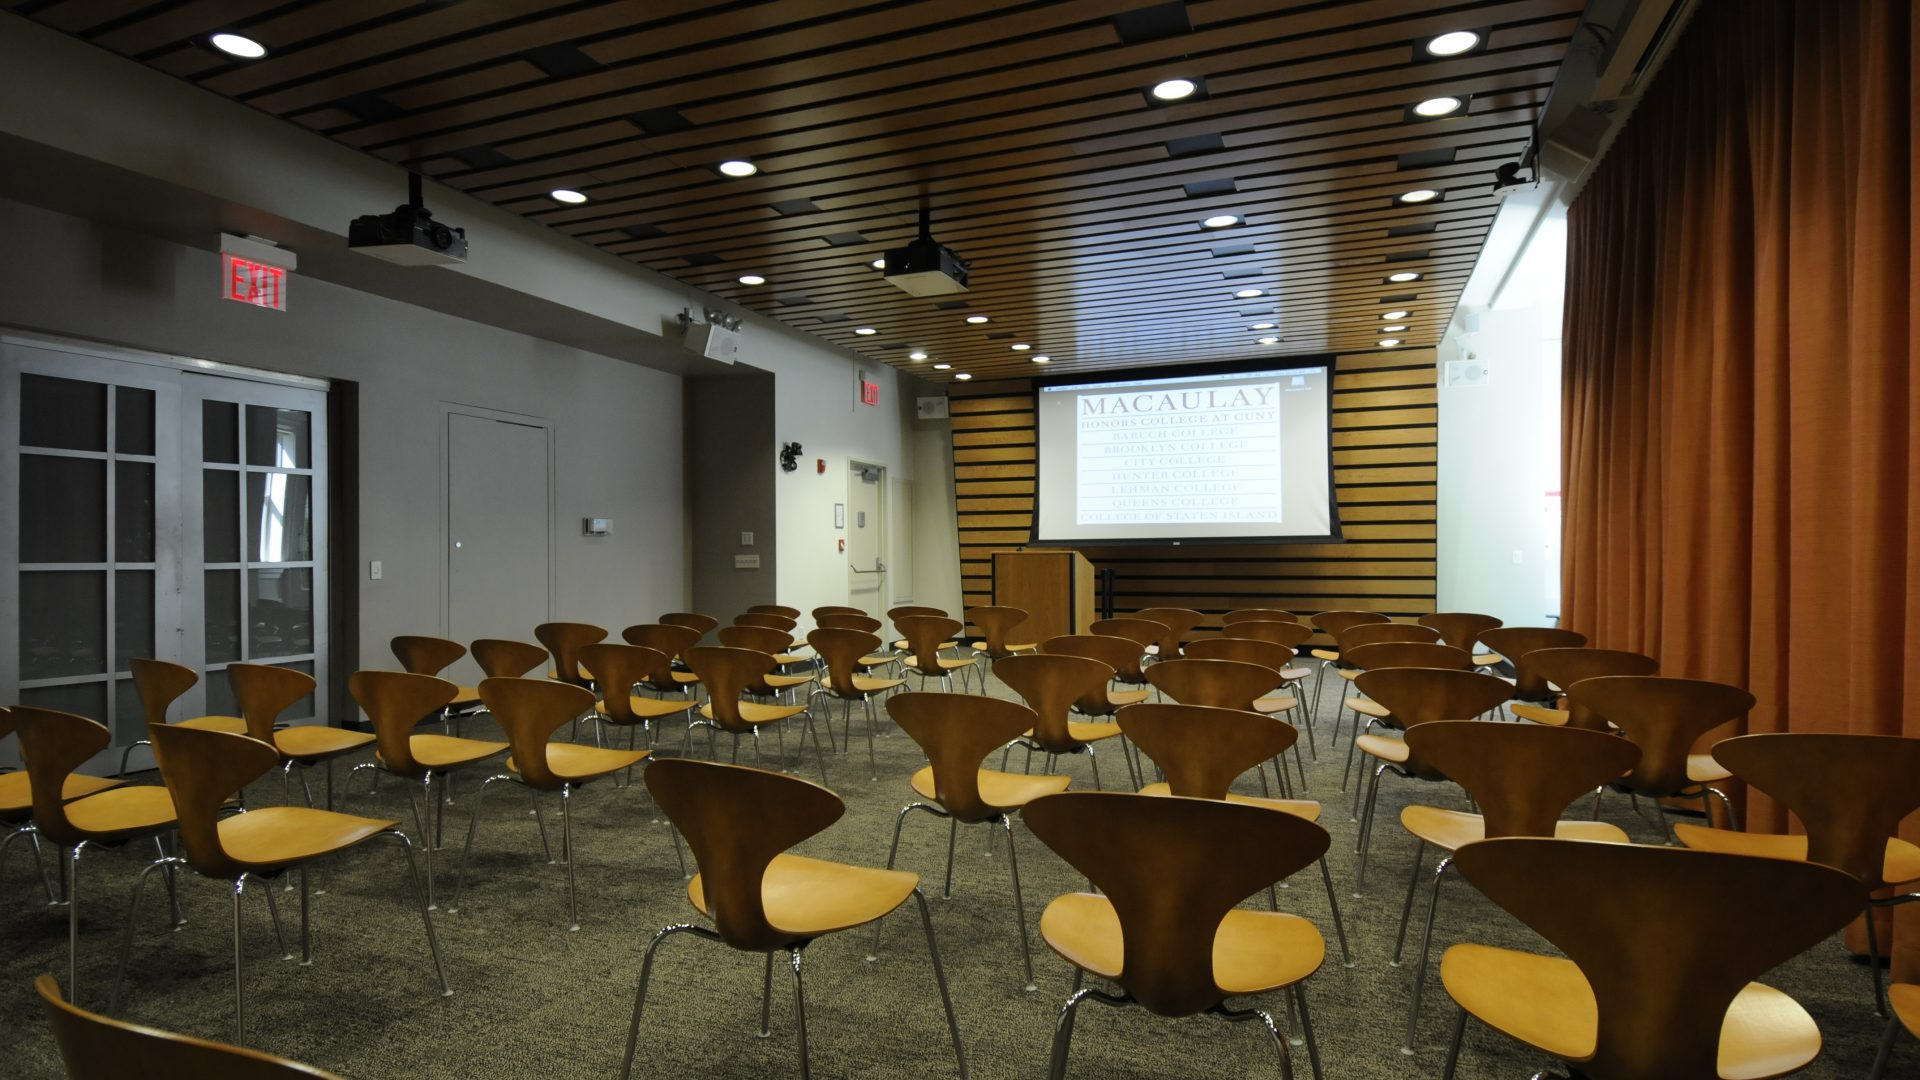 Photo of the Macaulay Lecture Hall